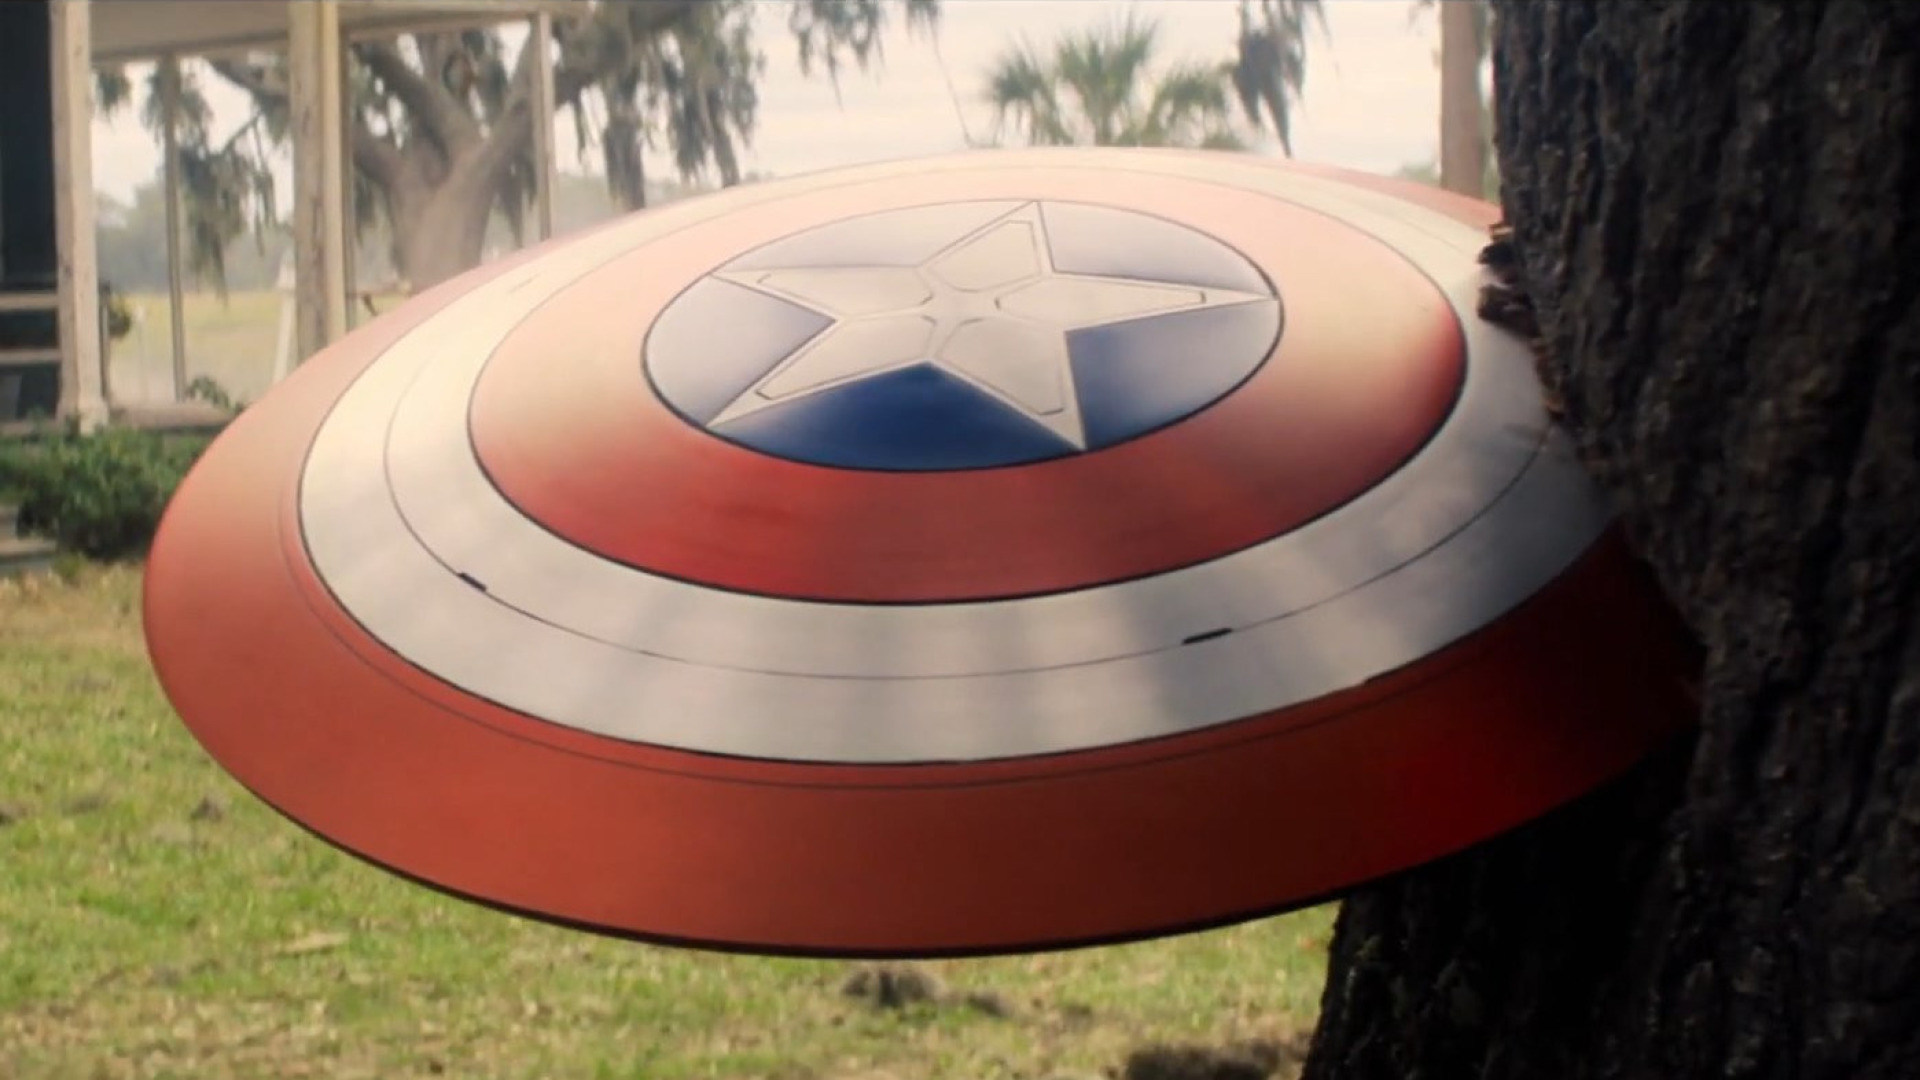 Trailer, Streaming, Serie, Disney+, Disney, Superhelden, The Falcon and the Winter Soldier